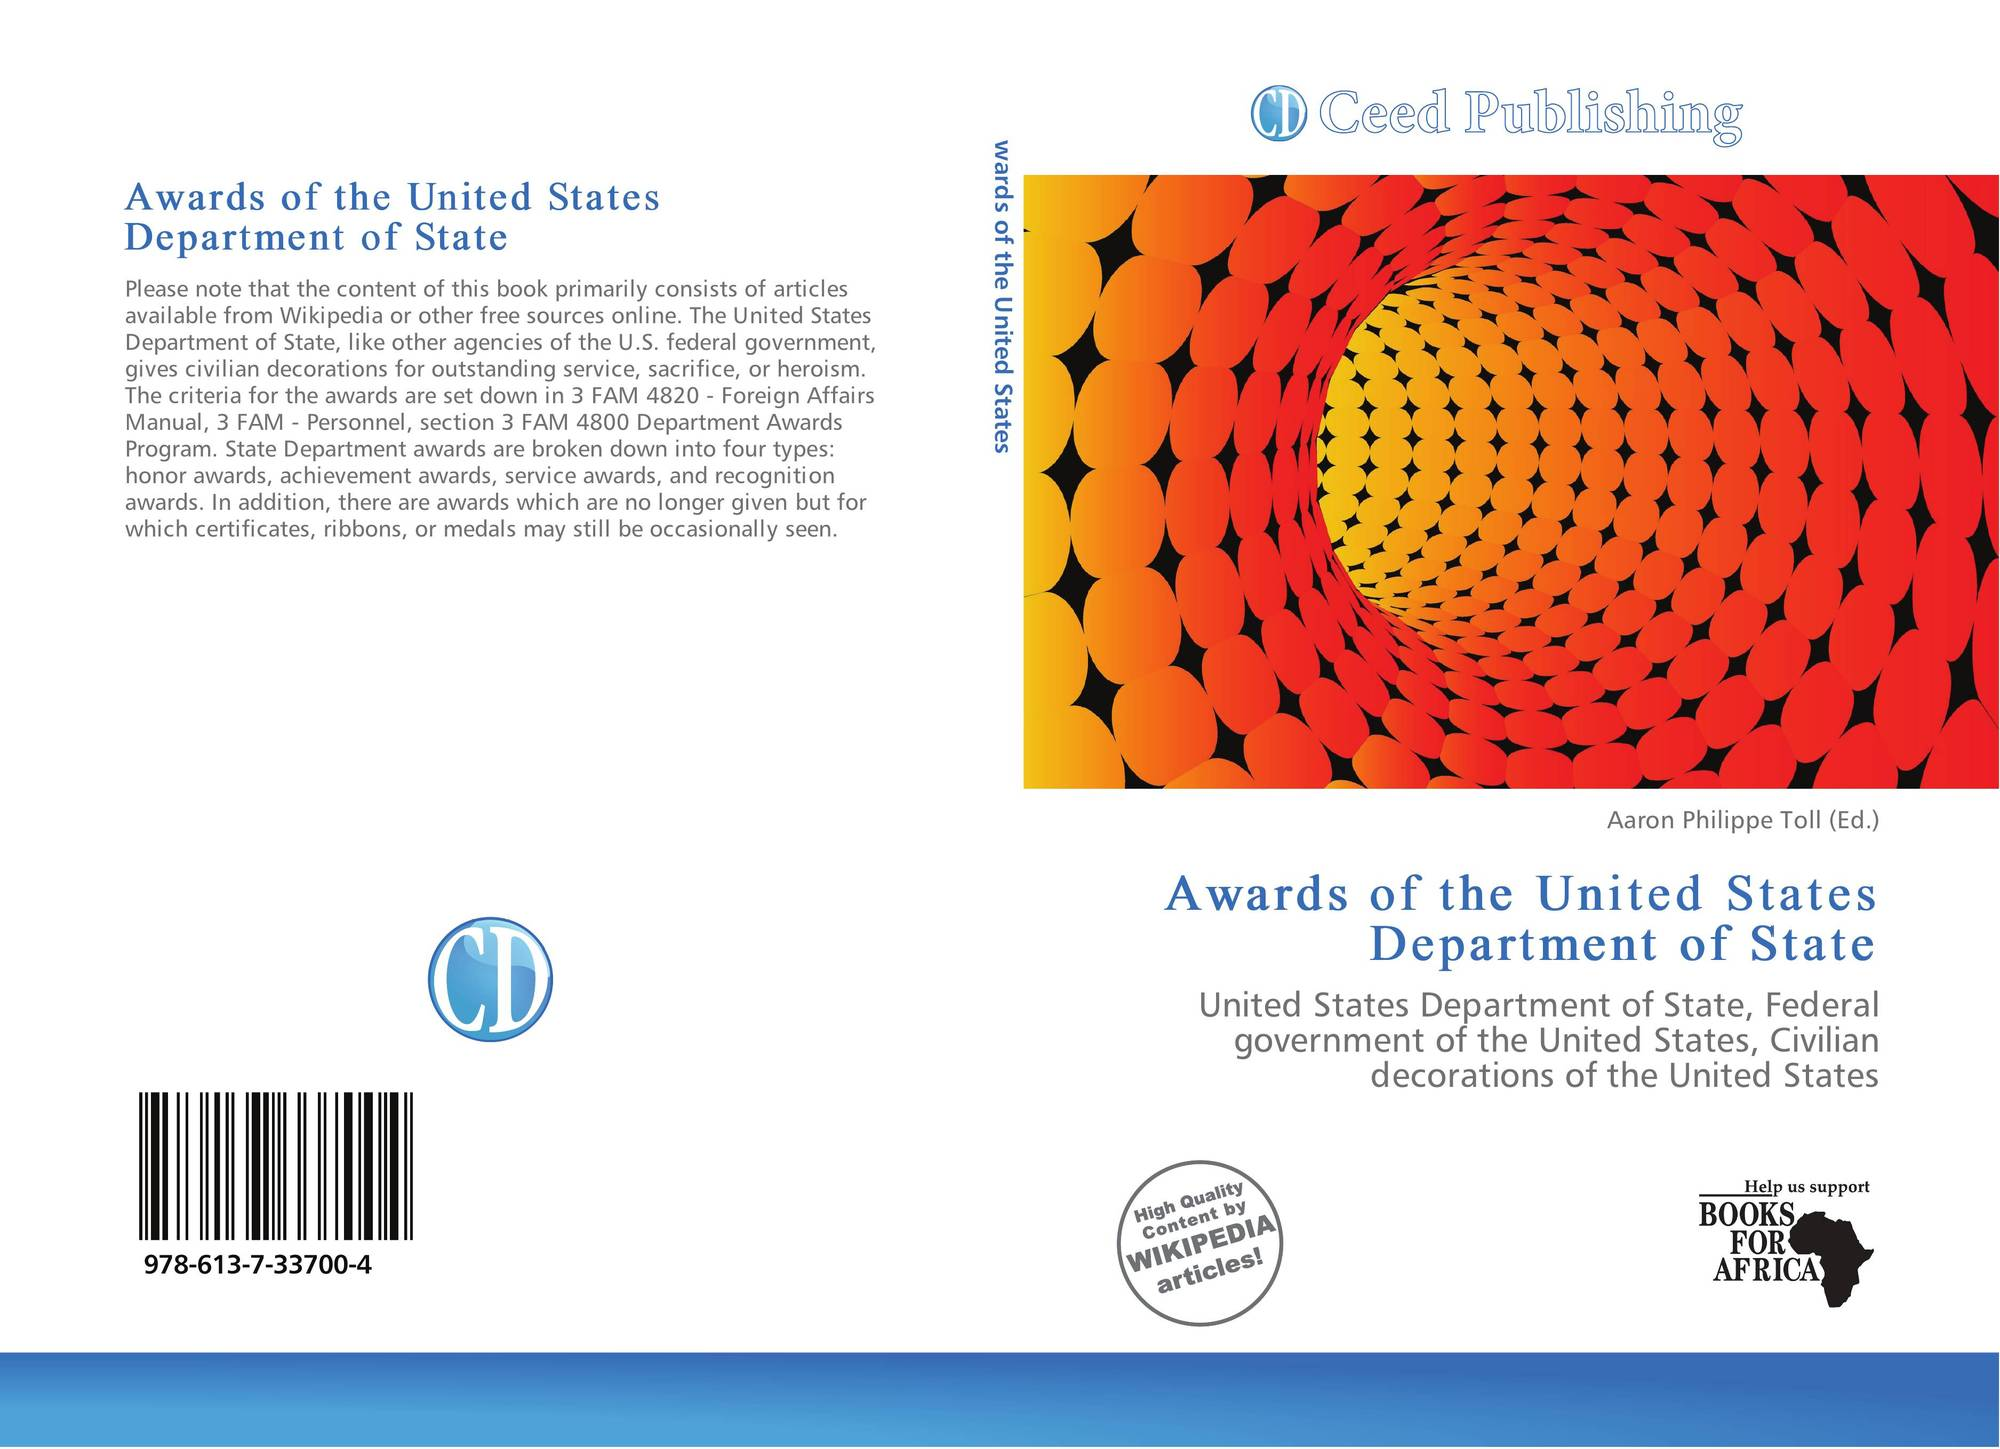 Awards of the United States Department of State